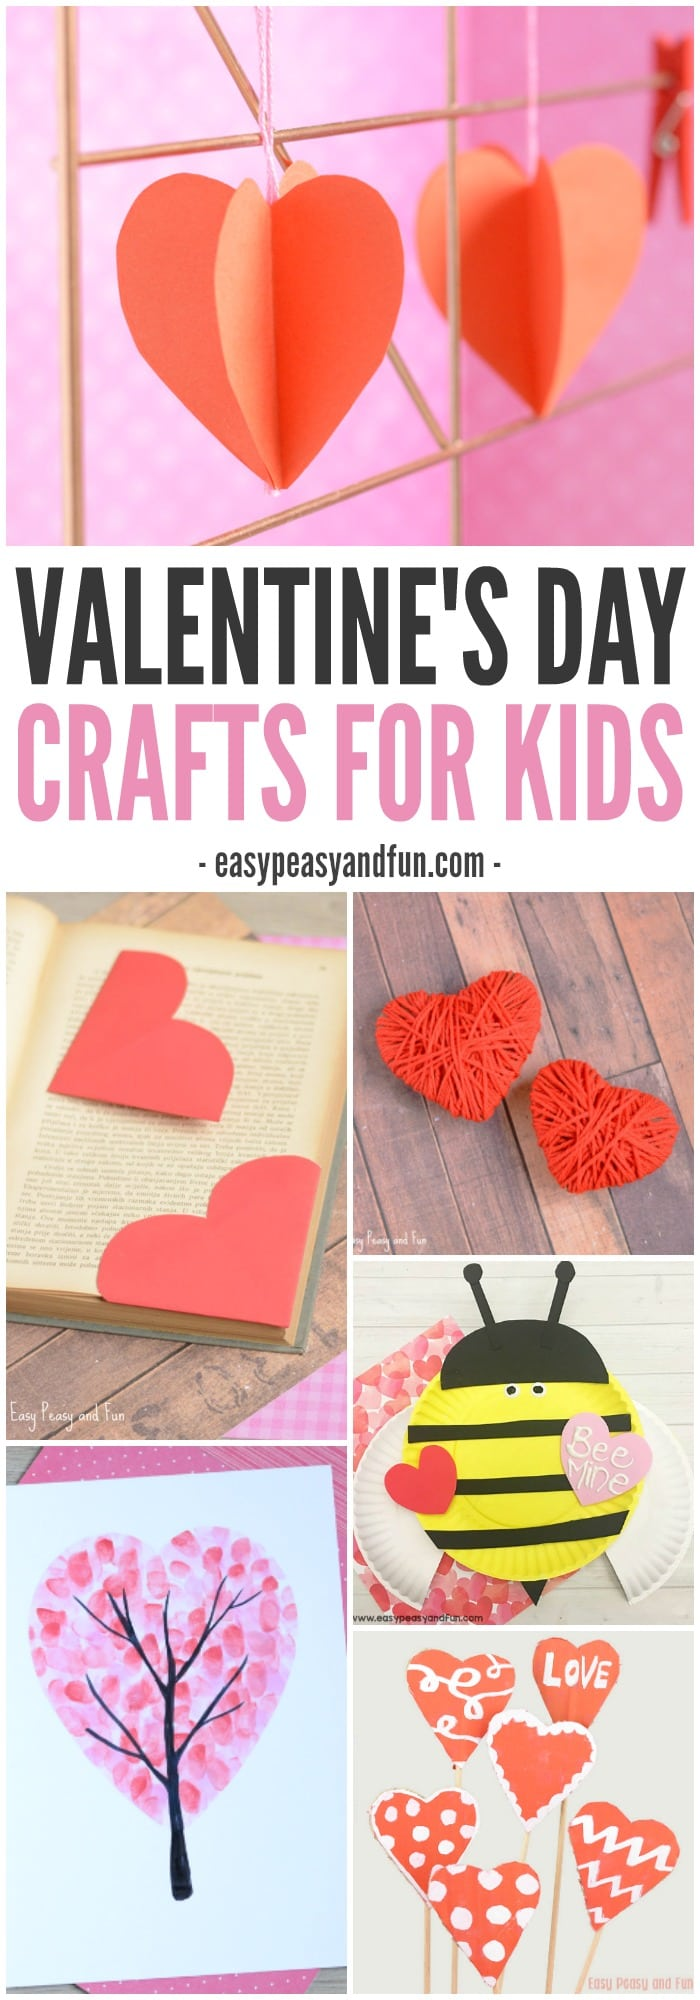 Valentines day crafts for kids easy peasy and fun for Valentine day crafts for kids